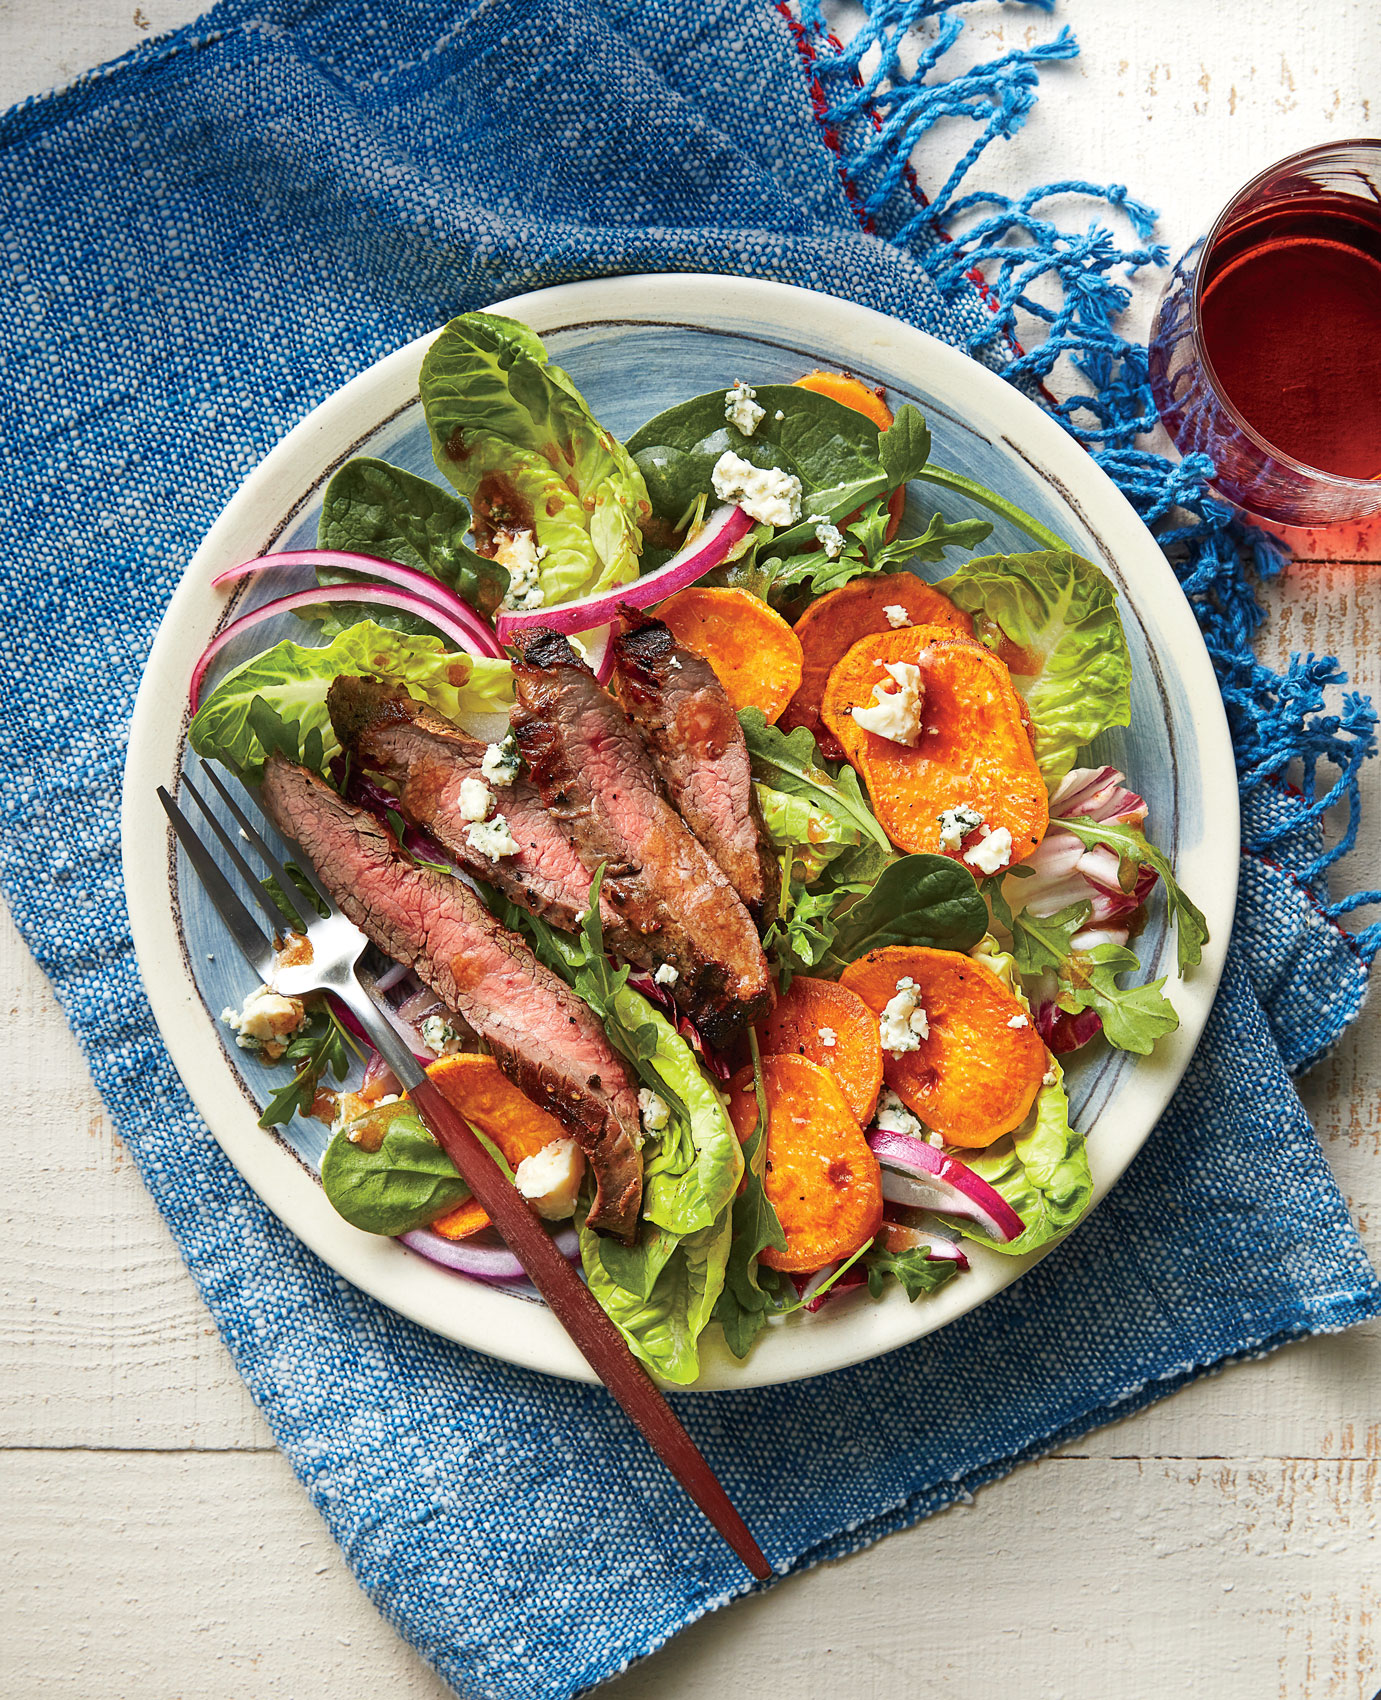 sl-Steak, Sweet Potato, and Blue Cheese Salad image